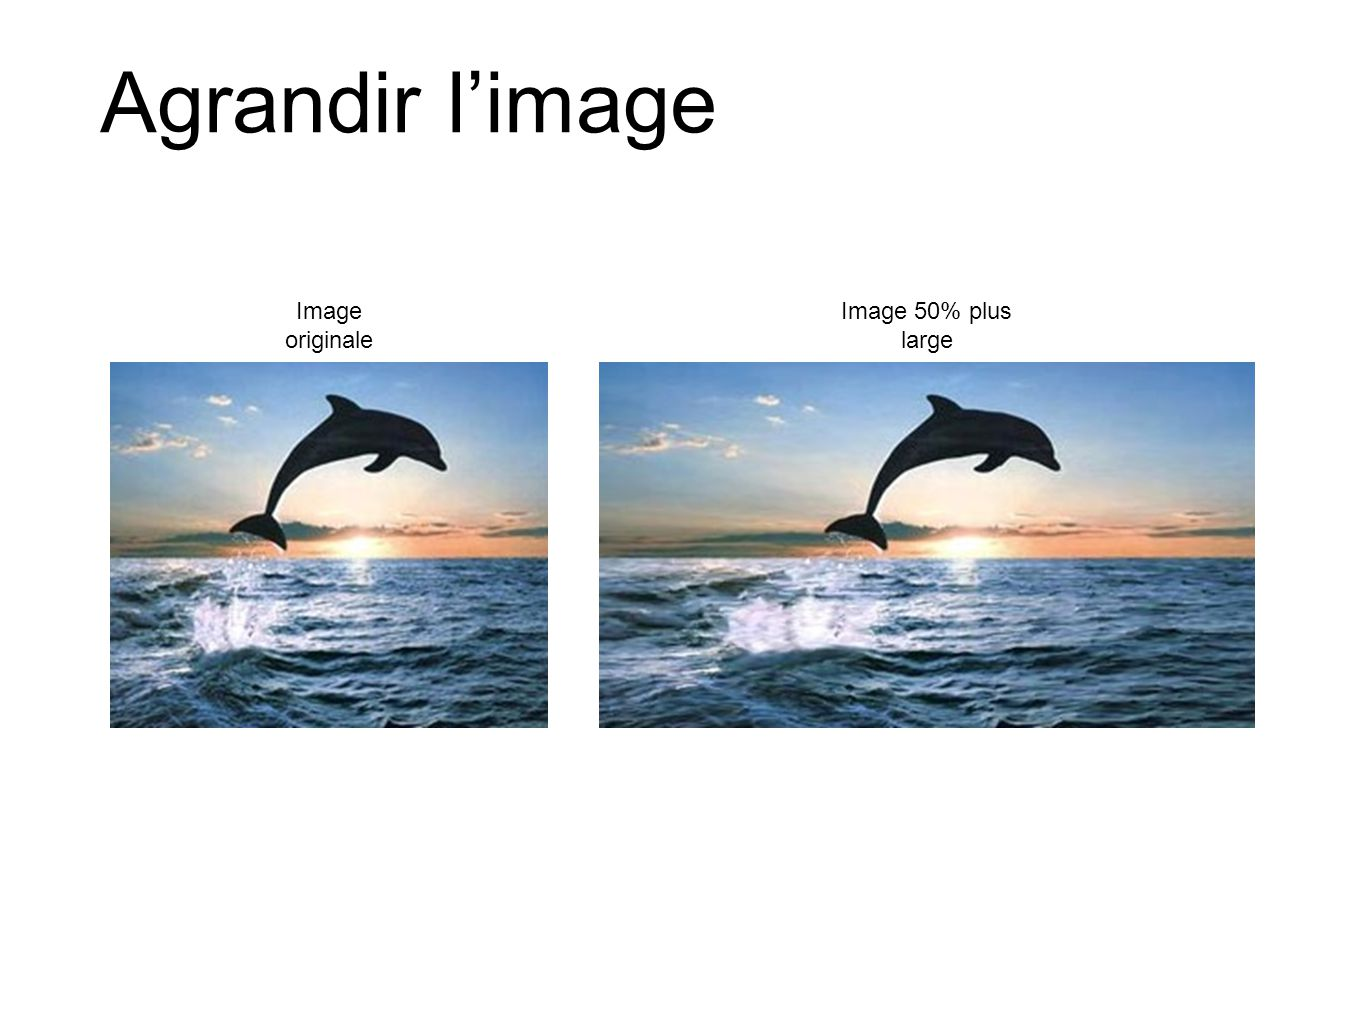 Agrandir limage Image originale Image 50% plus large